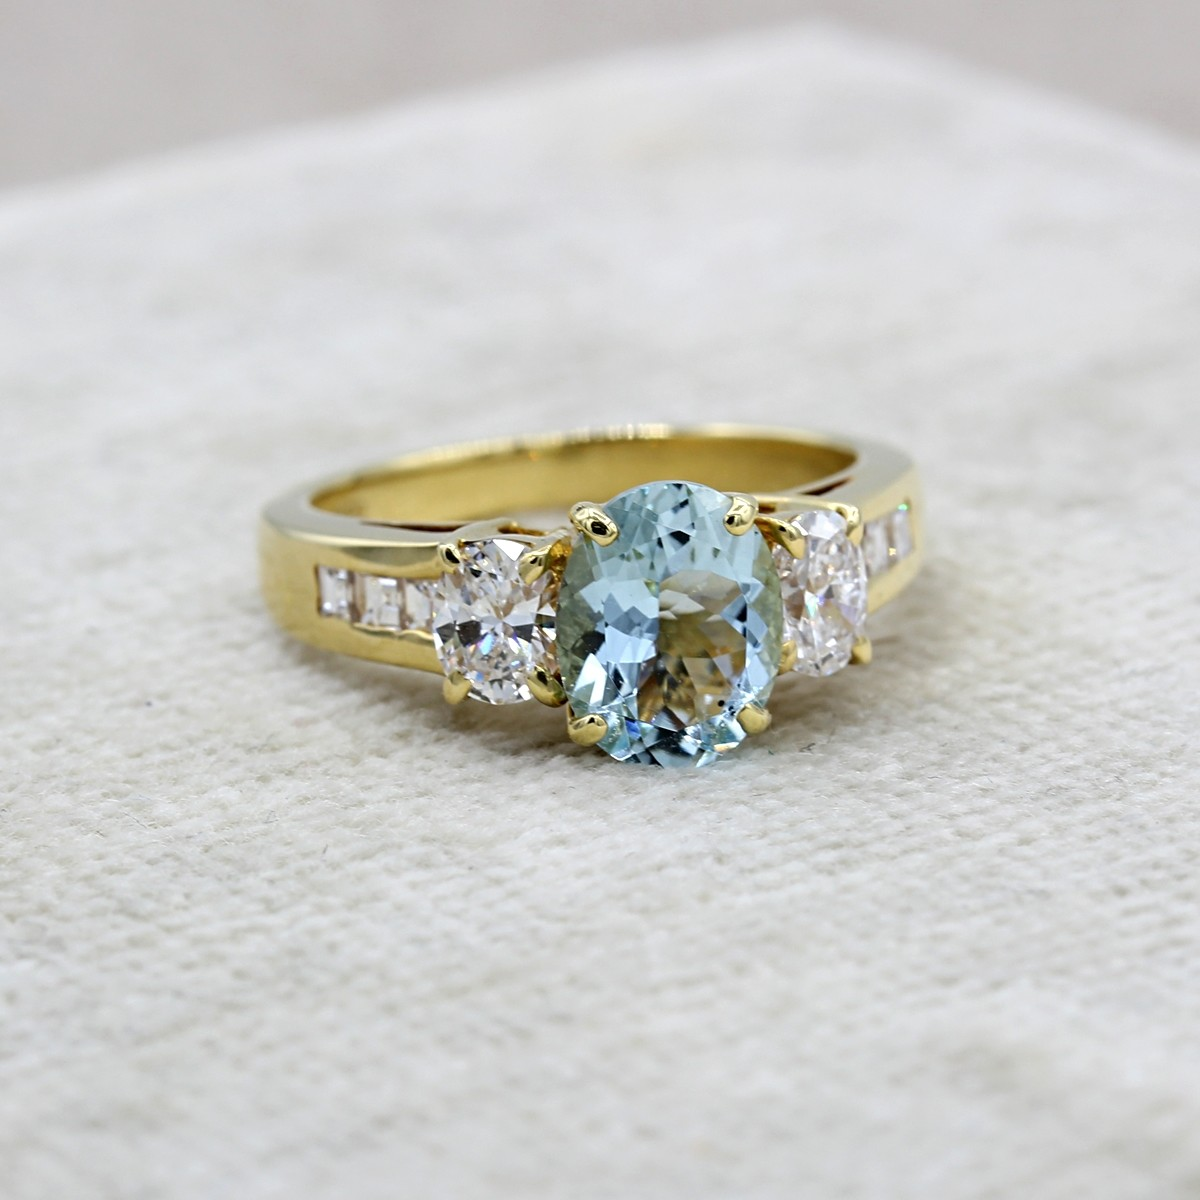 VINTAGE 14K YELLOW GOLD AQUAMARINE AND DIAMOND RING